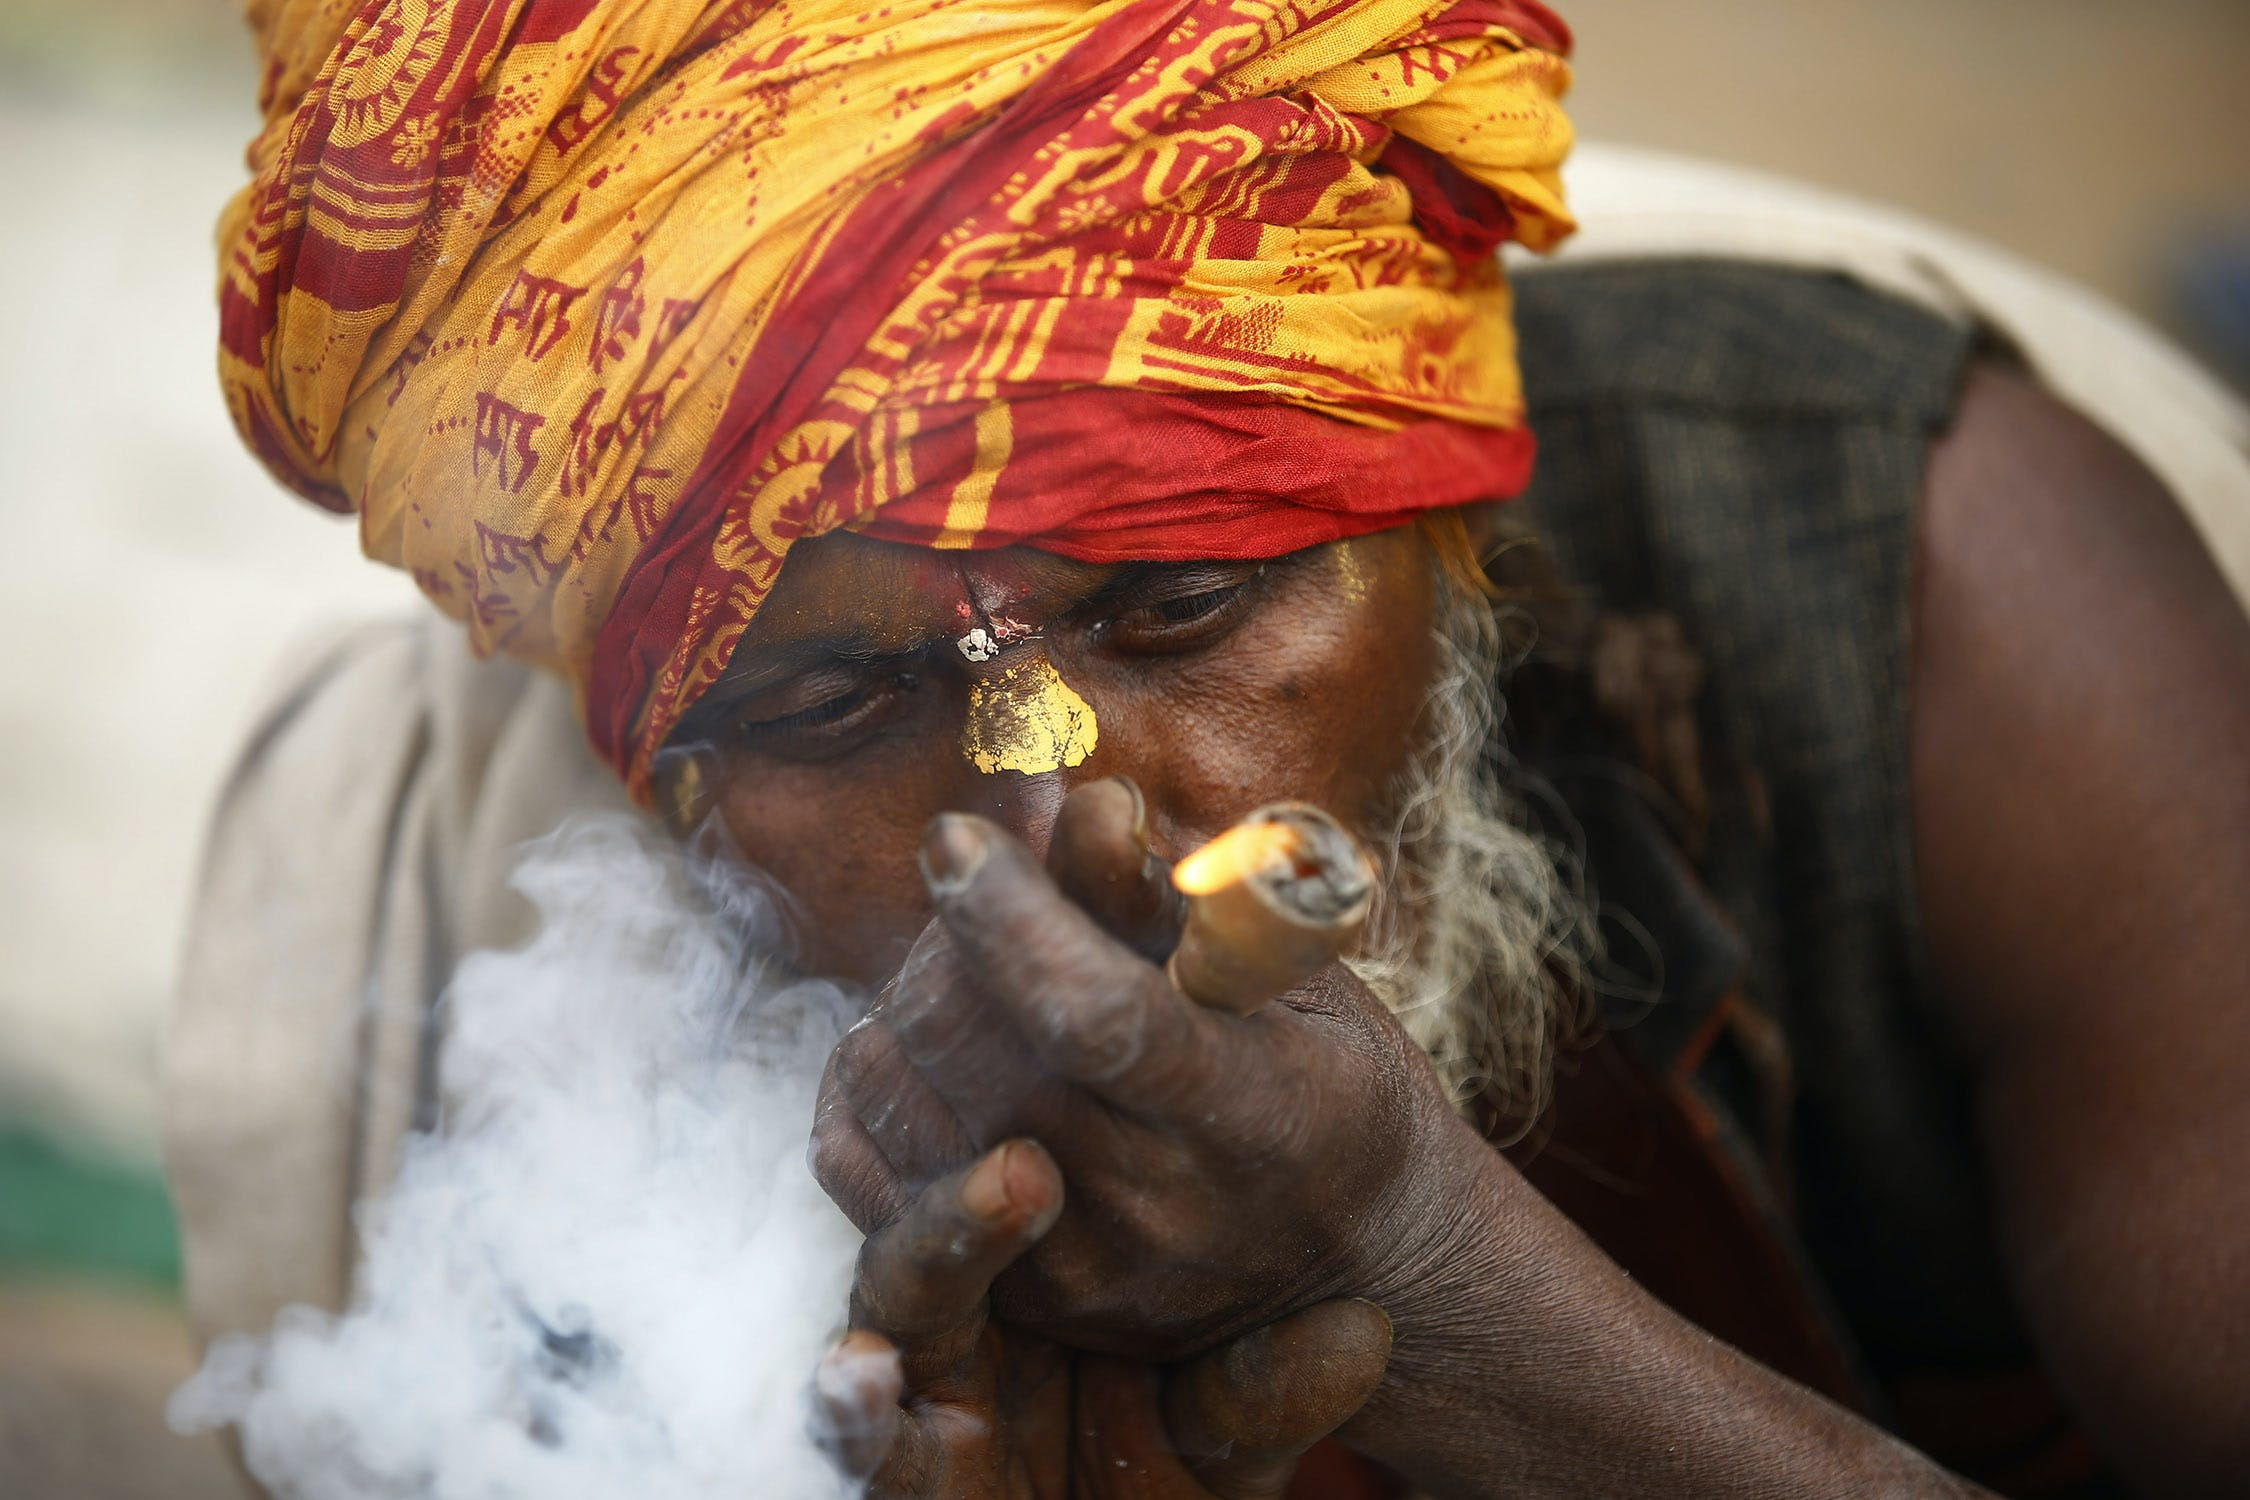 58W2099 Inside the festival in Nepal where smoking weed is holy